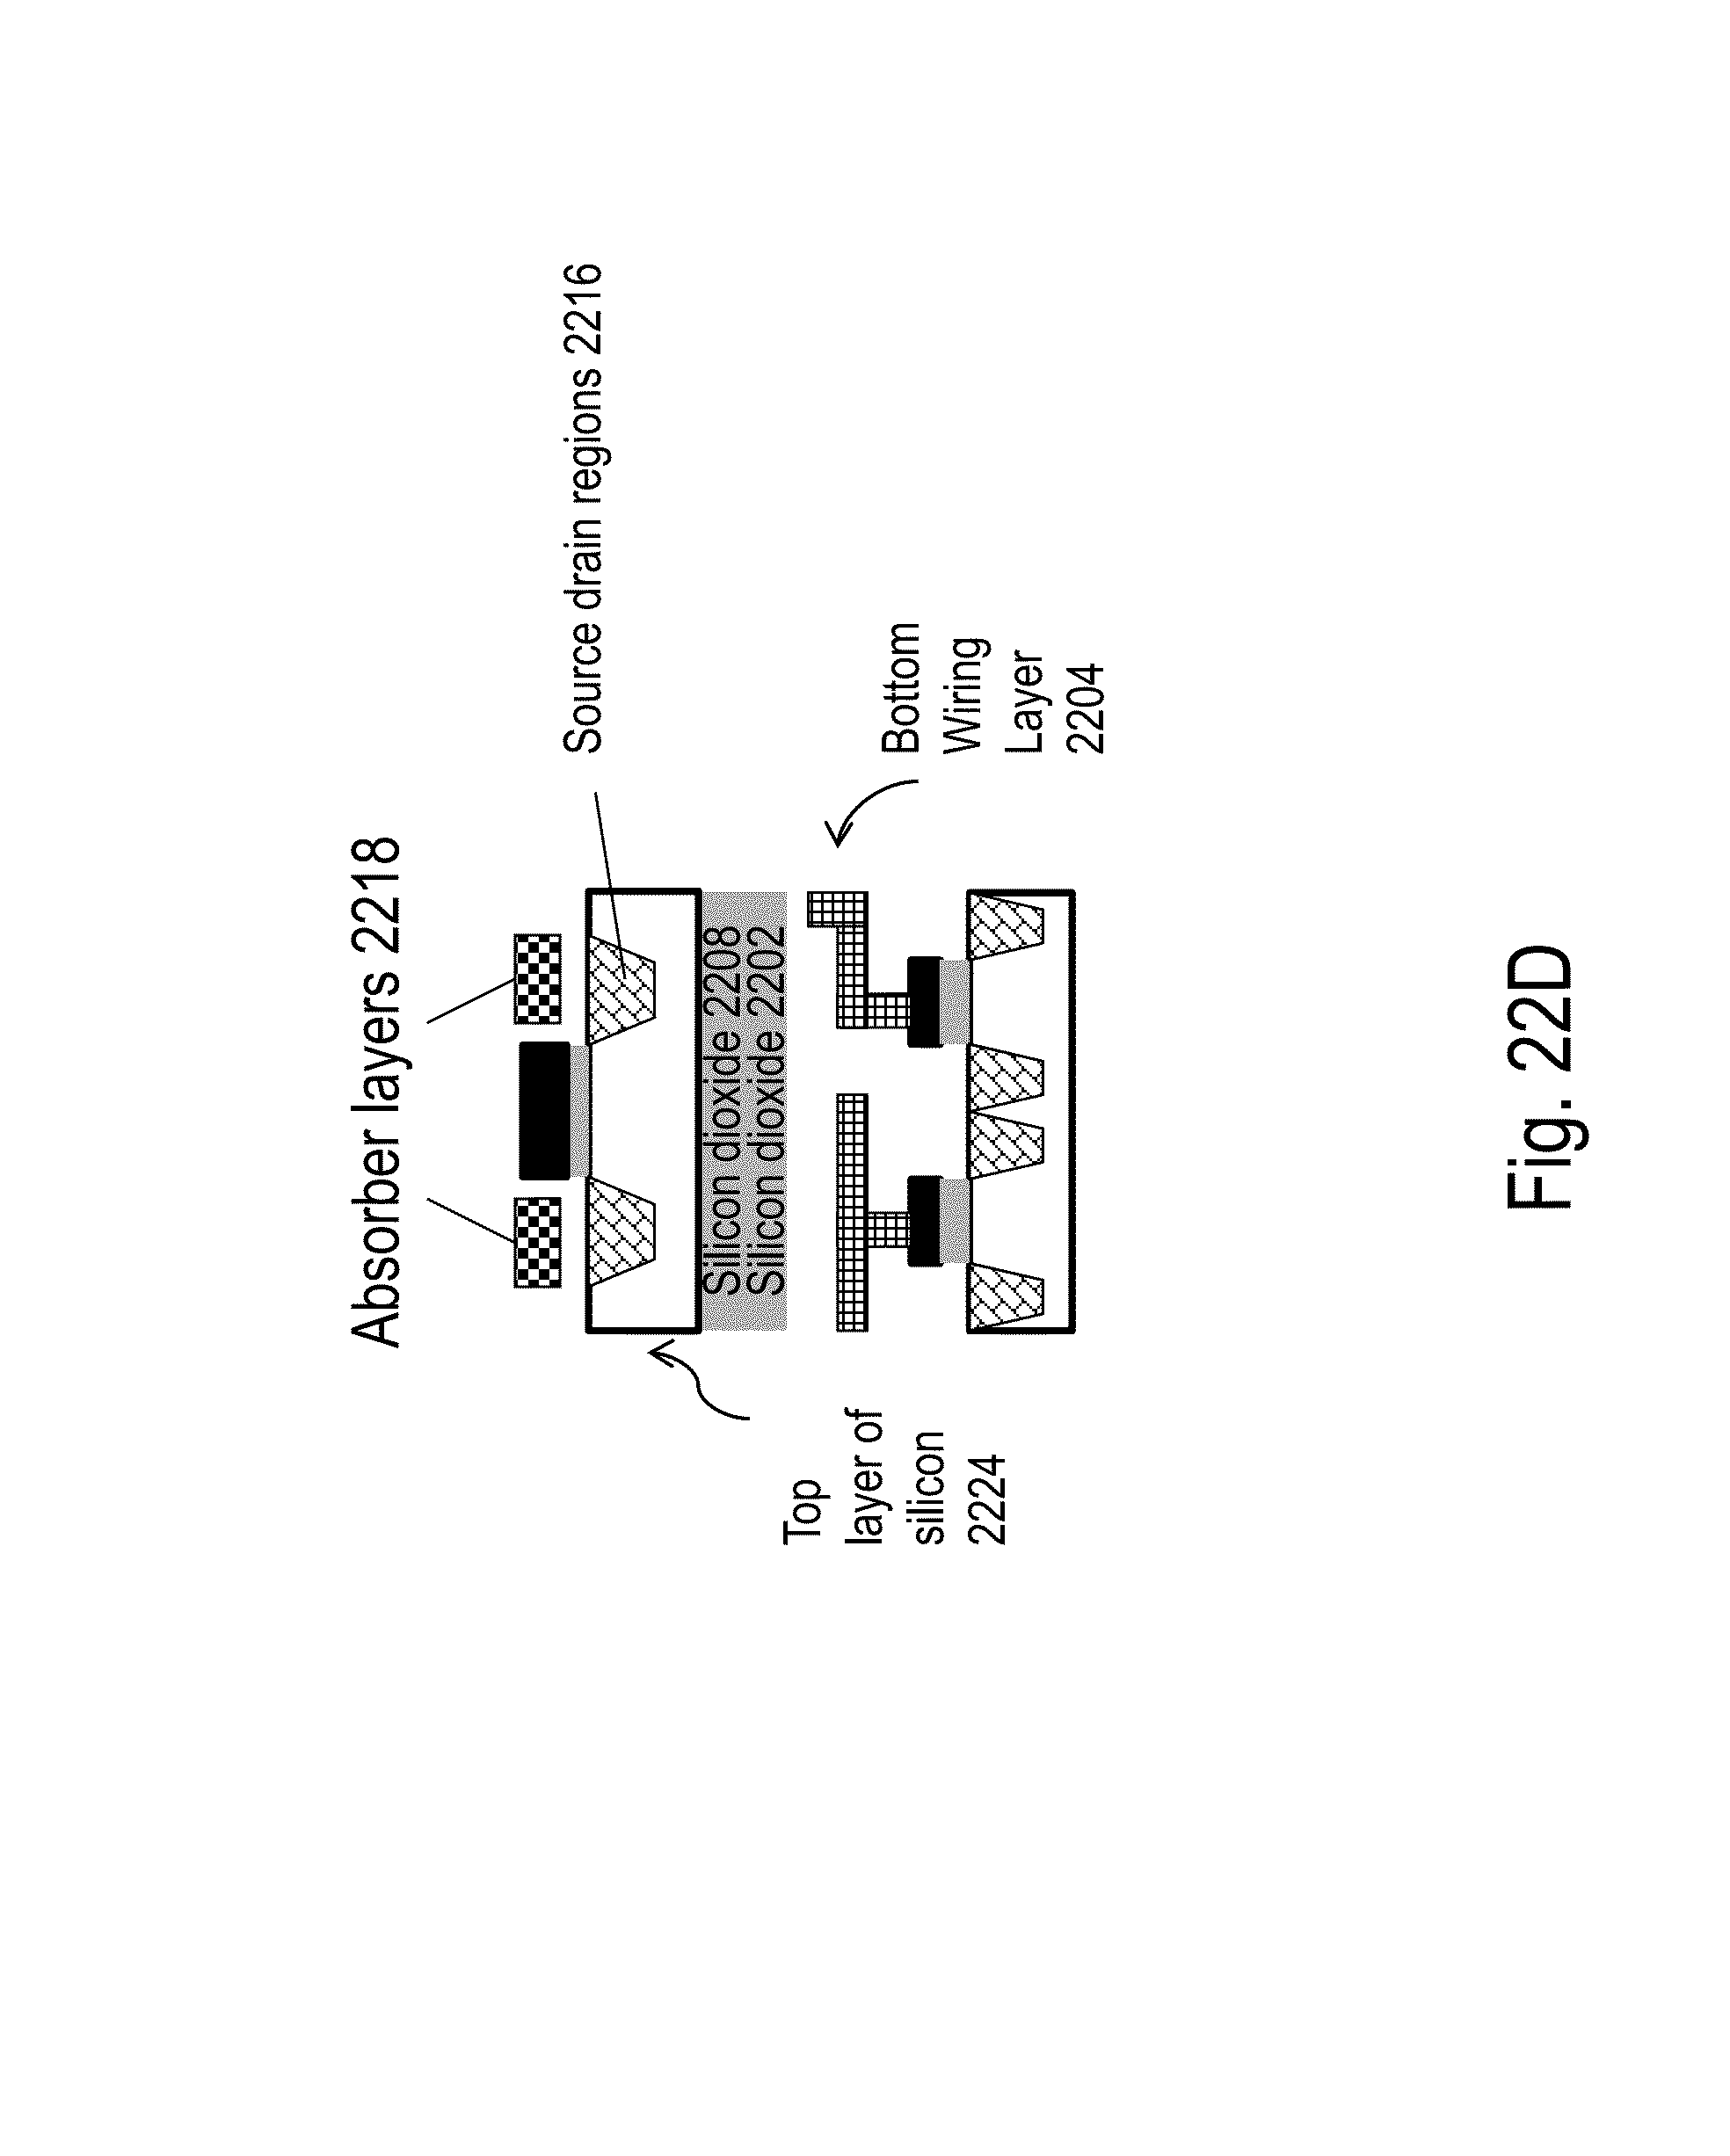 Patent Us 8536023 B2 Original New Toshiba Integrated Circuit O 5200 1 Of See More Images